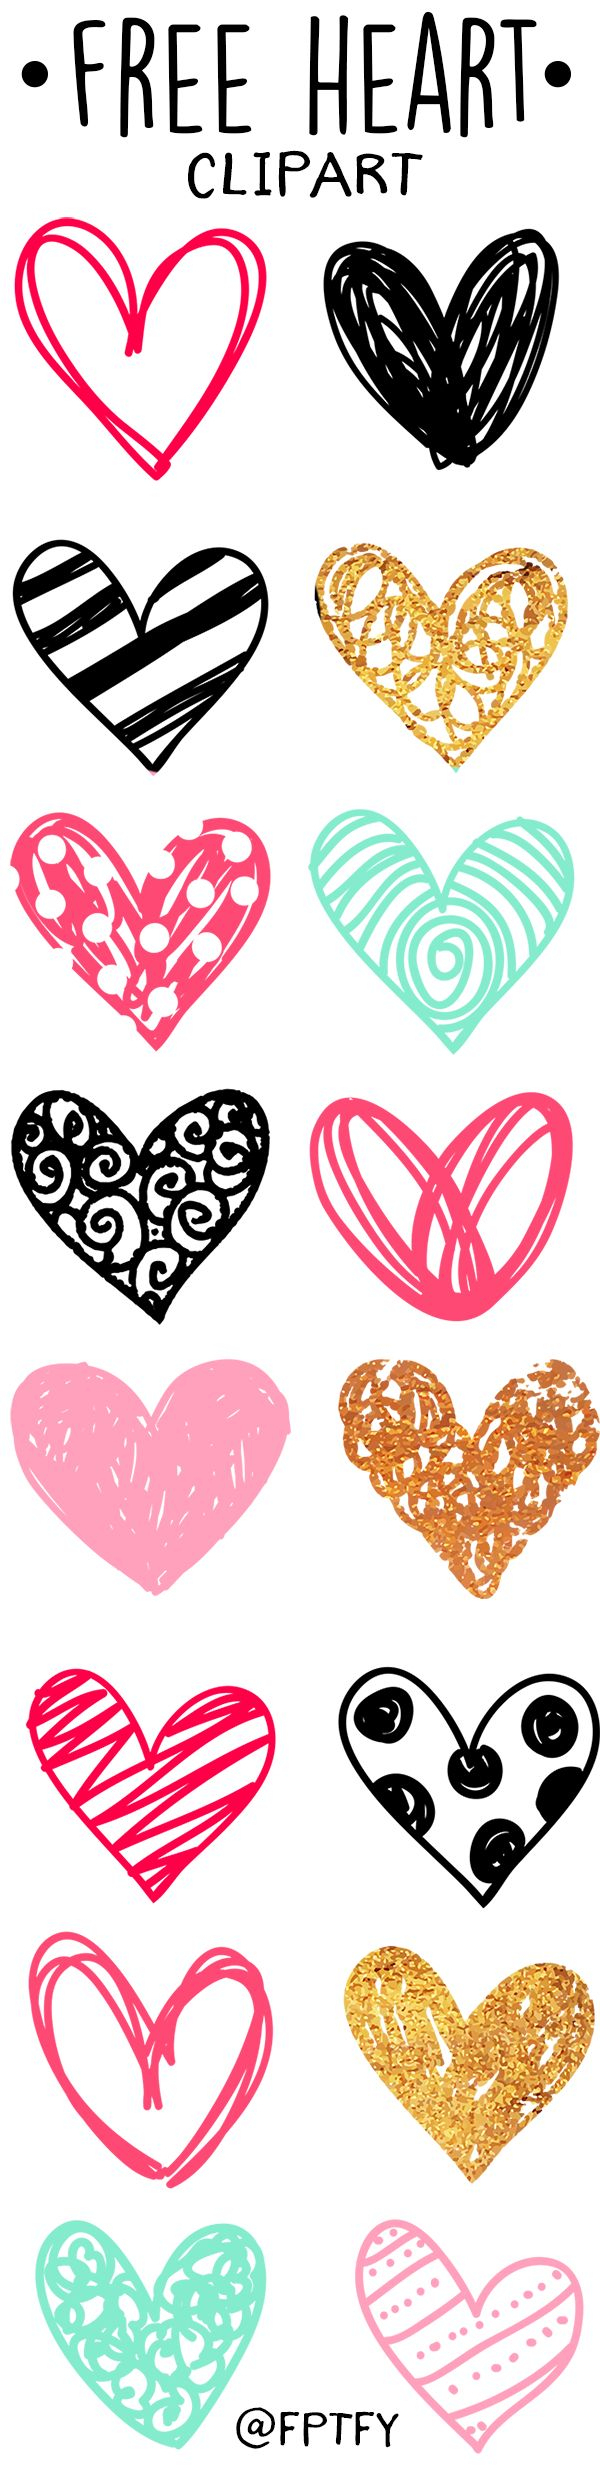 Free Printable Clip Art Images Clipart Collection - Free Printable Clip Art